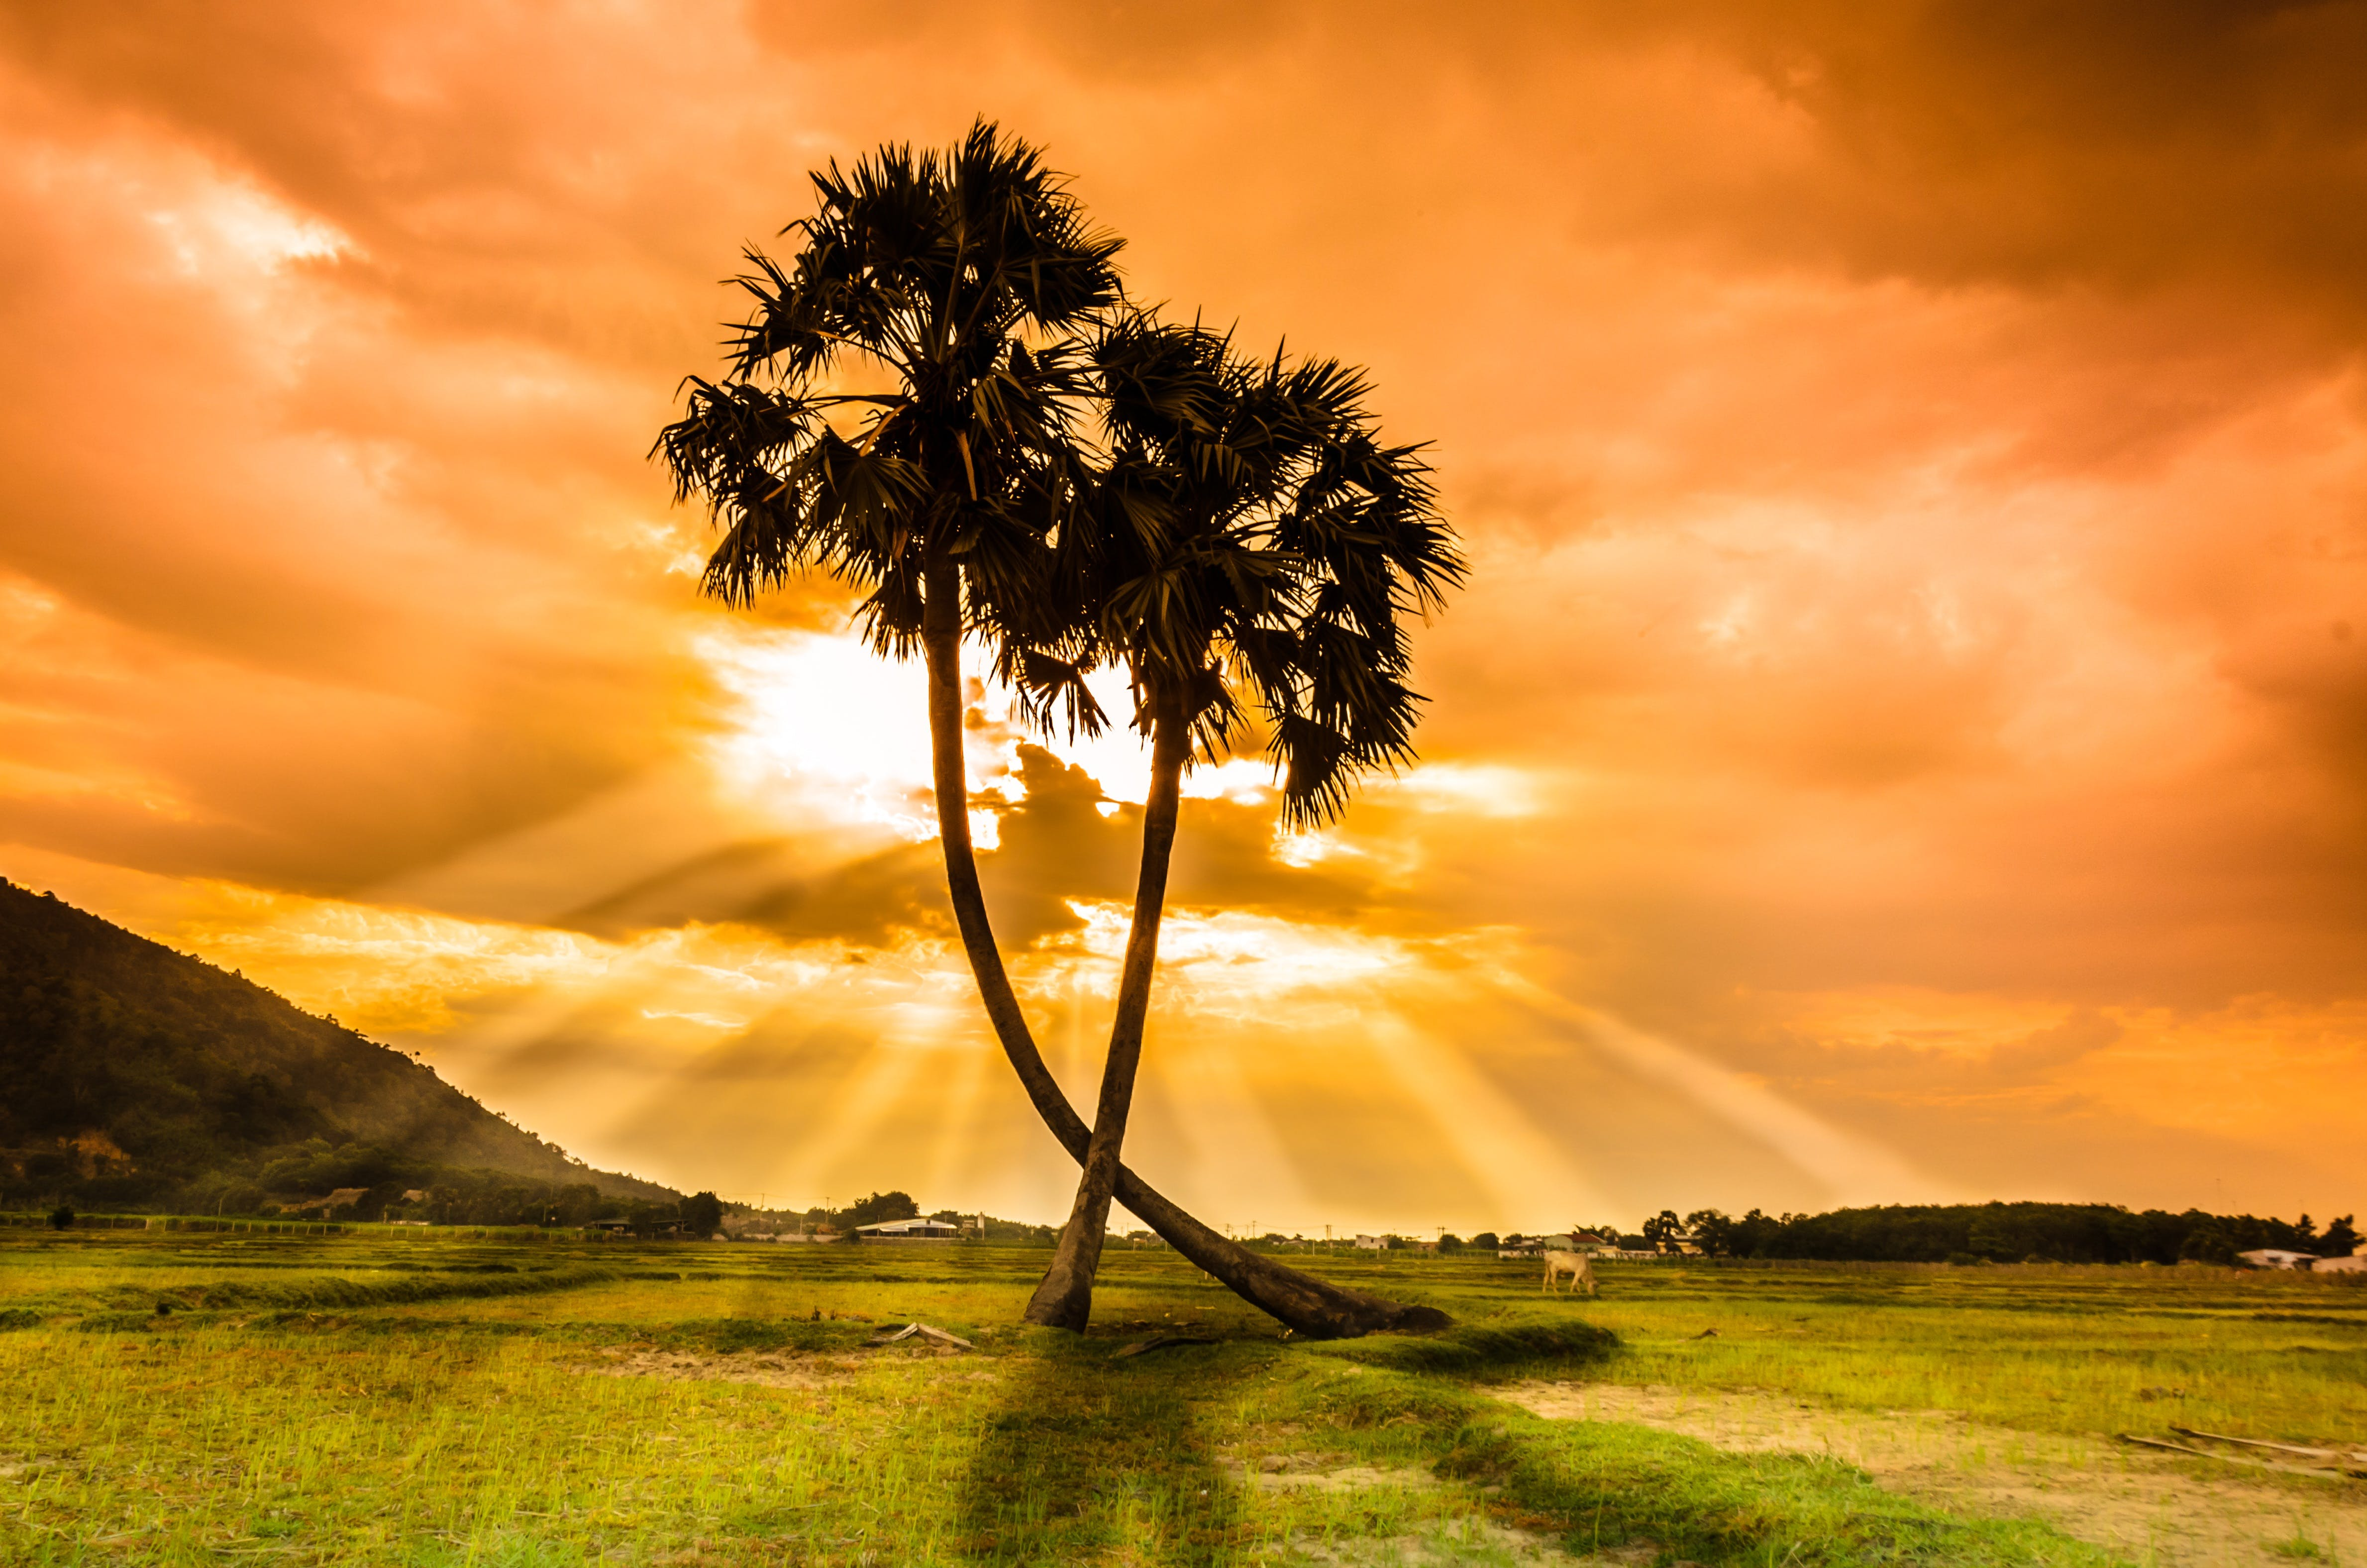 Palm Trees Against Sunlight on Meadows